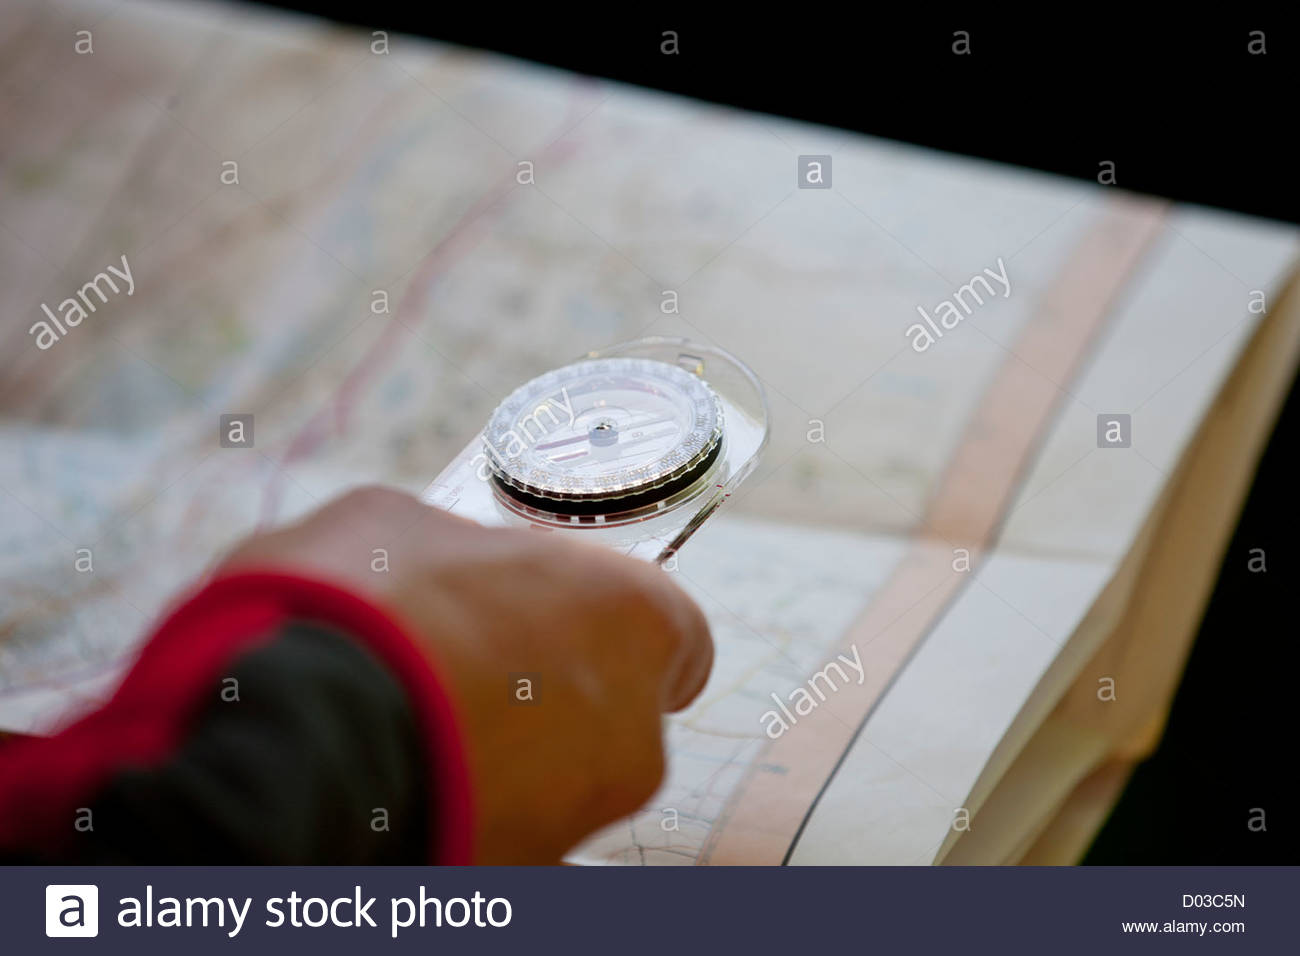 A man holding a map and compass, close up - Stock Image